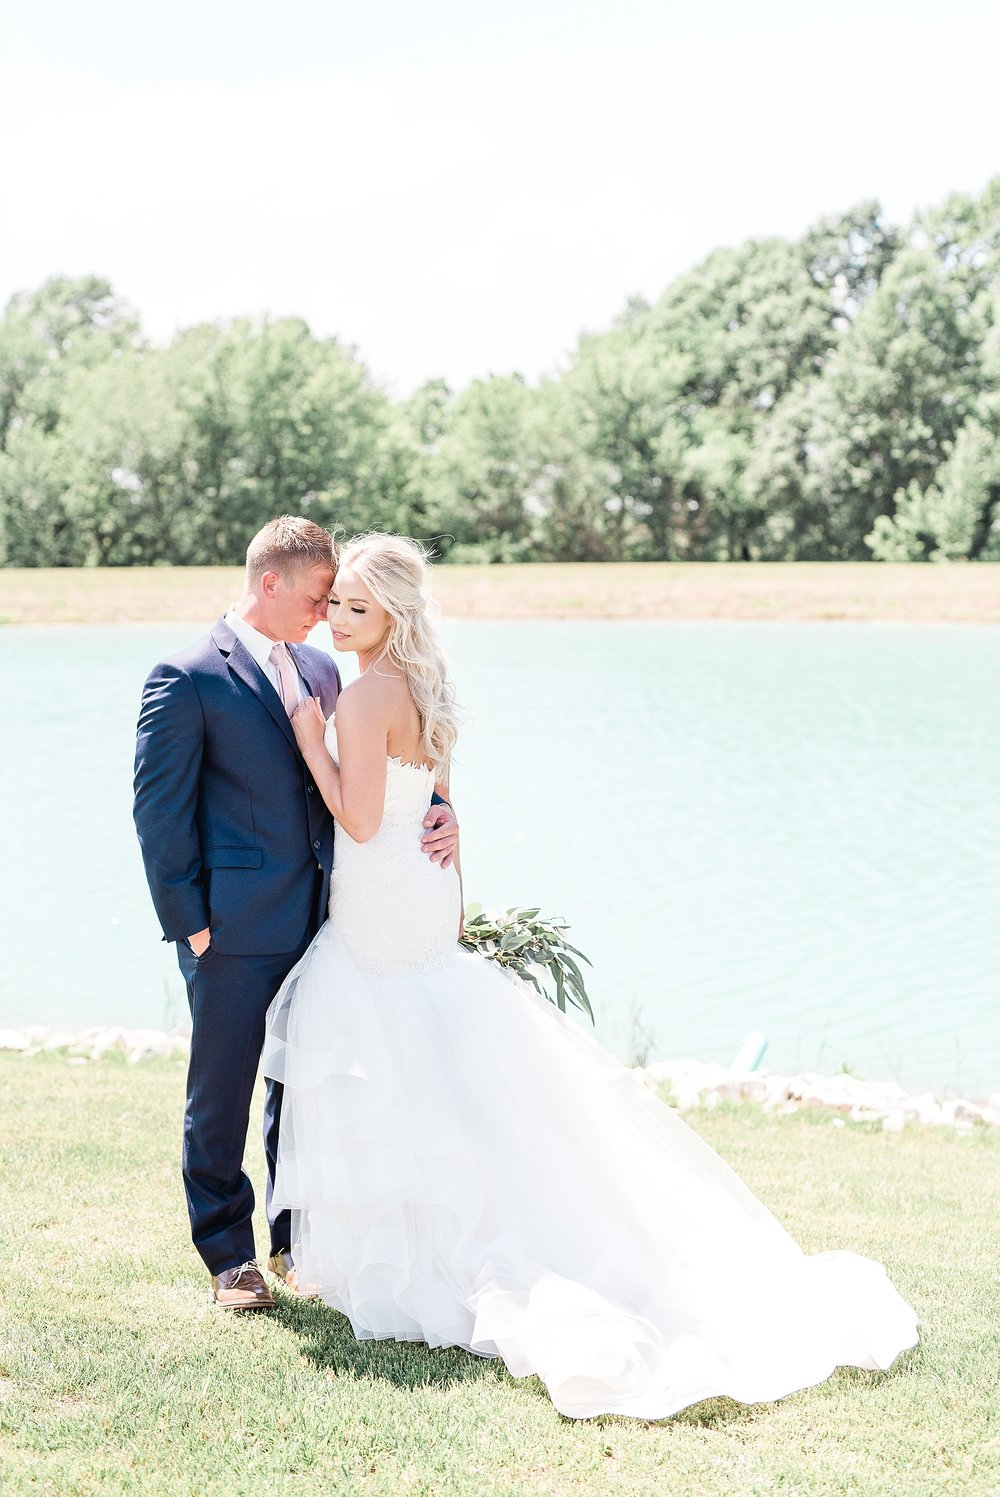 Stunning Heartfelt, Elegant, Fine Art, Chic, Outdoor Spring Wedding with Blush, Cream, Greenery, Rose Gold, and Sequins at Emerson Fields Venue by Kelsi Kliethermes Photography_0026.jpg